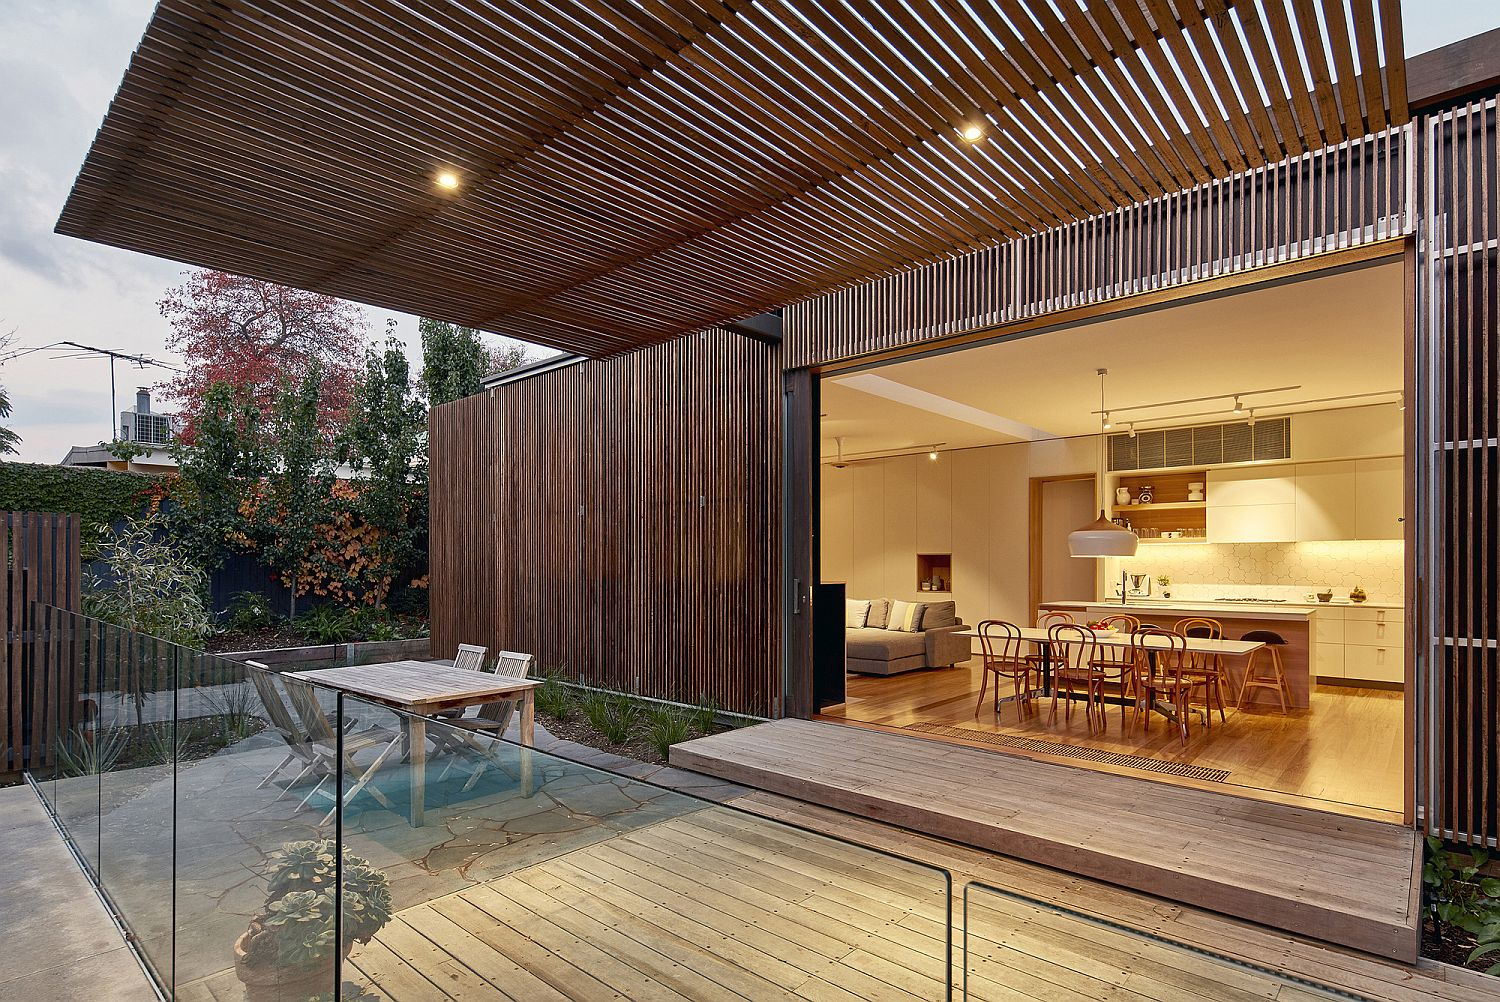 Operable timber screens help control the degree of sunlight entering the home over various seasons